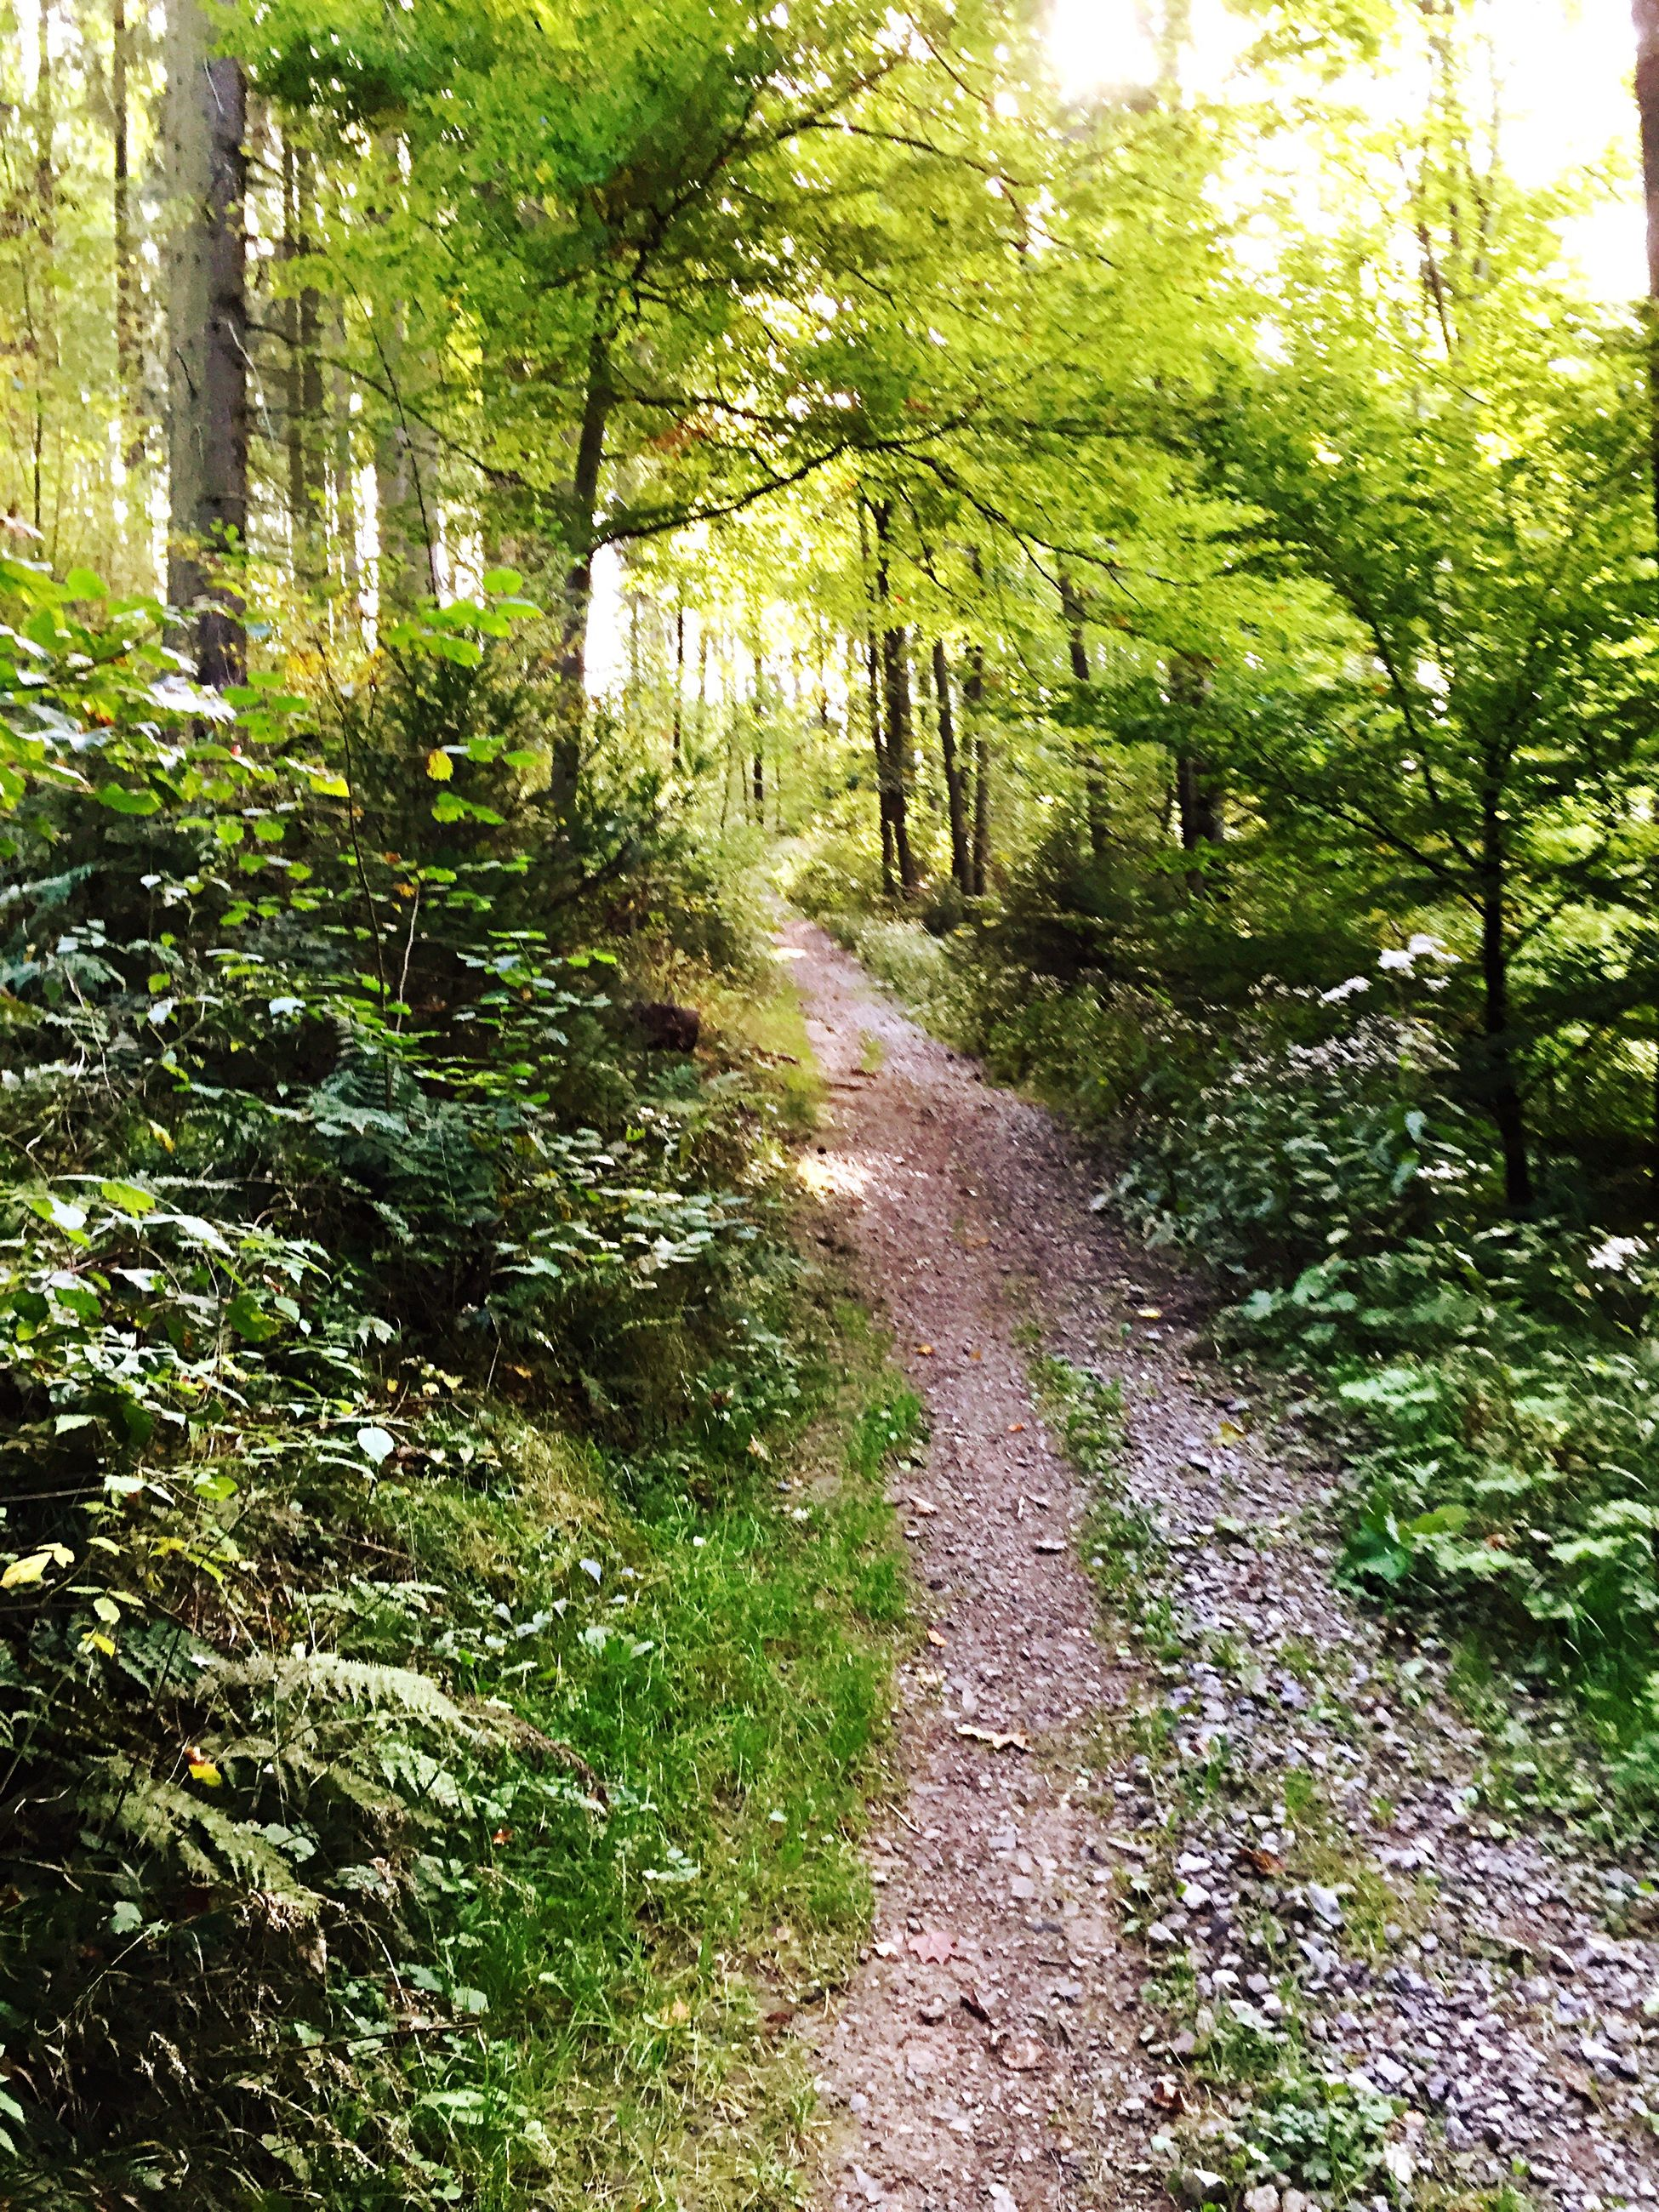 the way forward, tree, growth, forest, diminishing perspective, footpath, tranquility, nature, green color, vanishing point, tranquil scene, pathway, plant, dirt road, narrow, tree trunk, transportation, beauty in nature, walkway, day